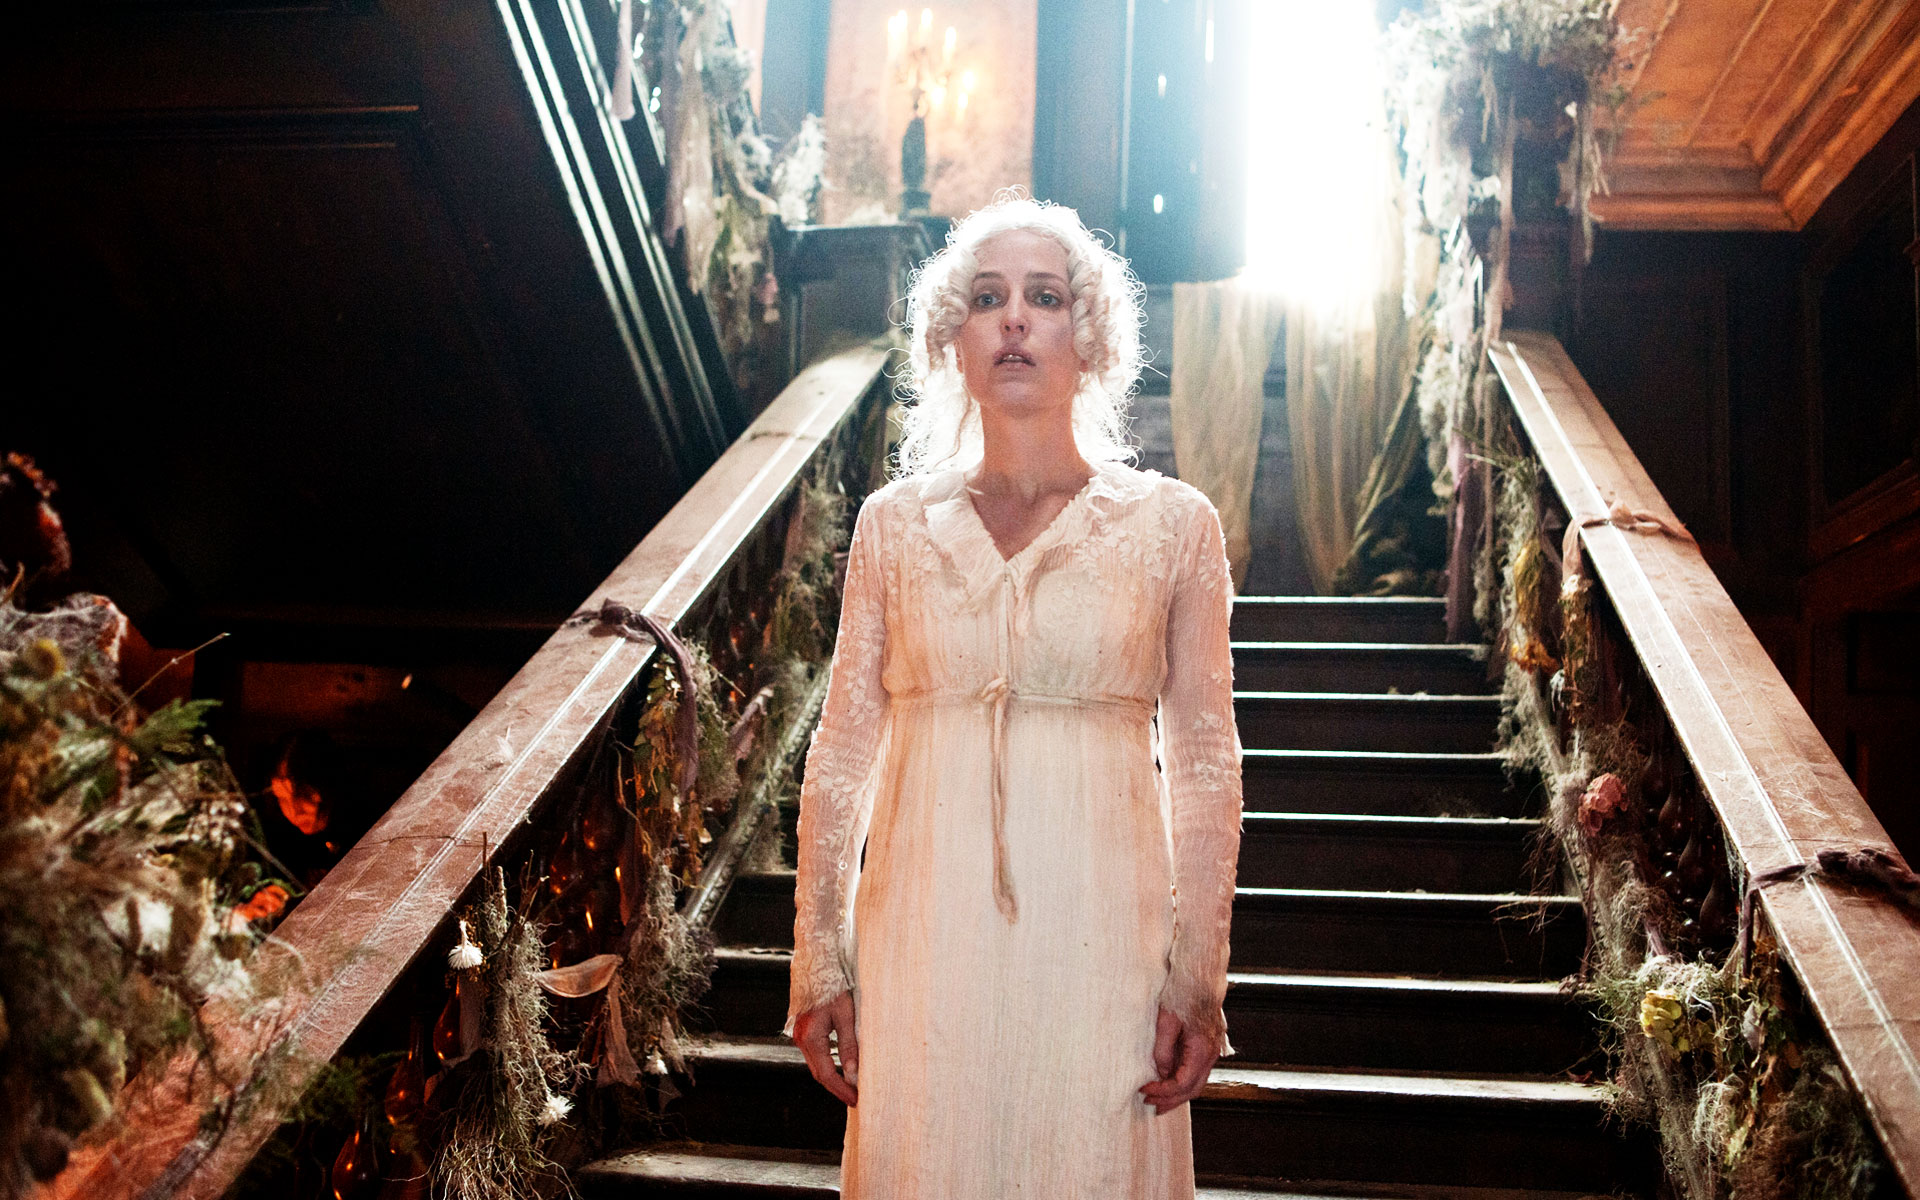 Great Expectations - Satis House interior -Mrs Havisham Gillian Anderson - Stairwell David Roger - Production design .jpg